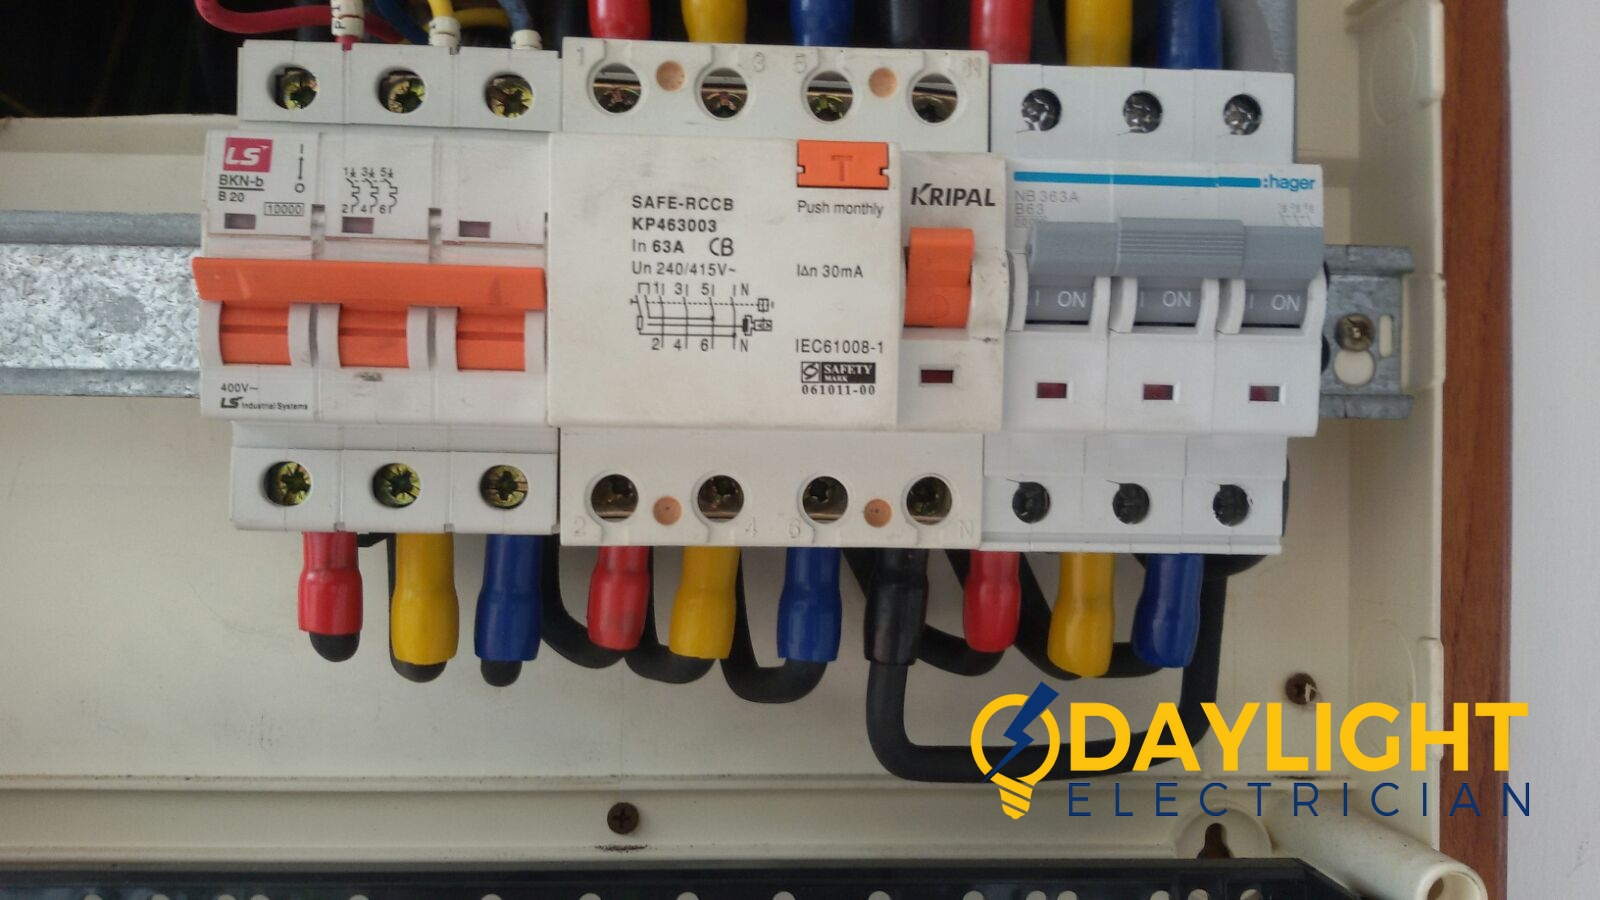 Install New Power Socket Electrician Singapore Hdb Canberra Road Sembawang Electrician